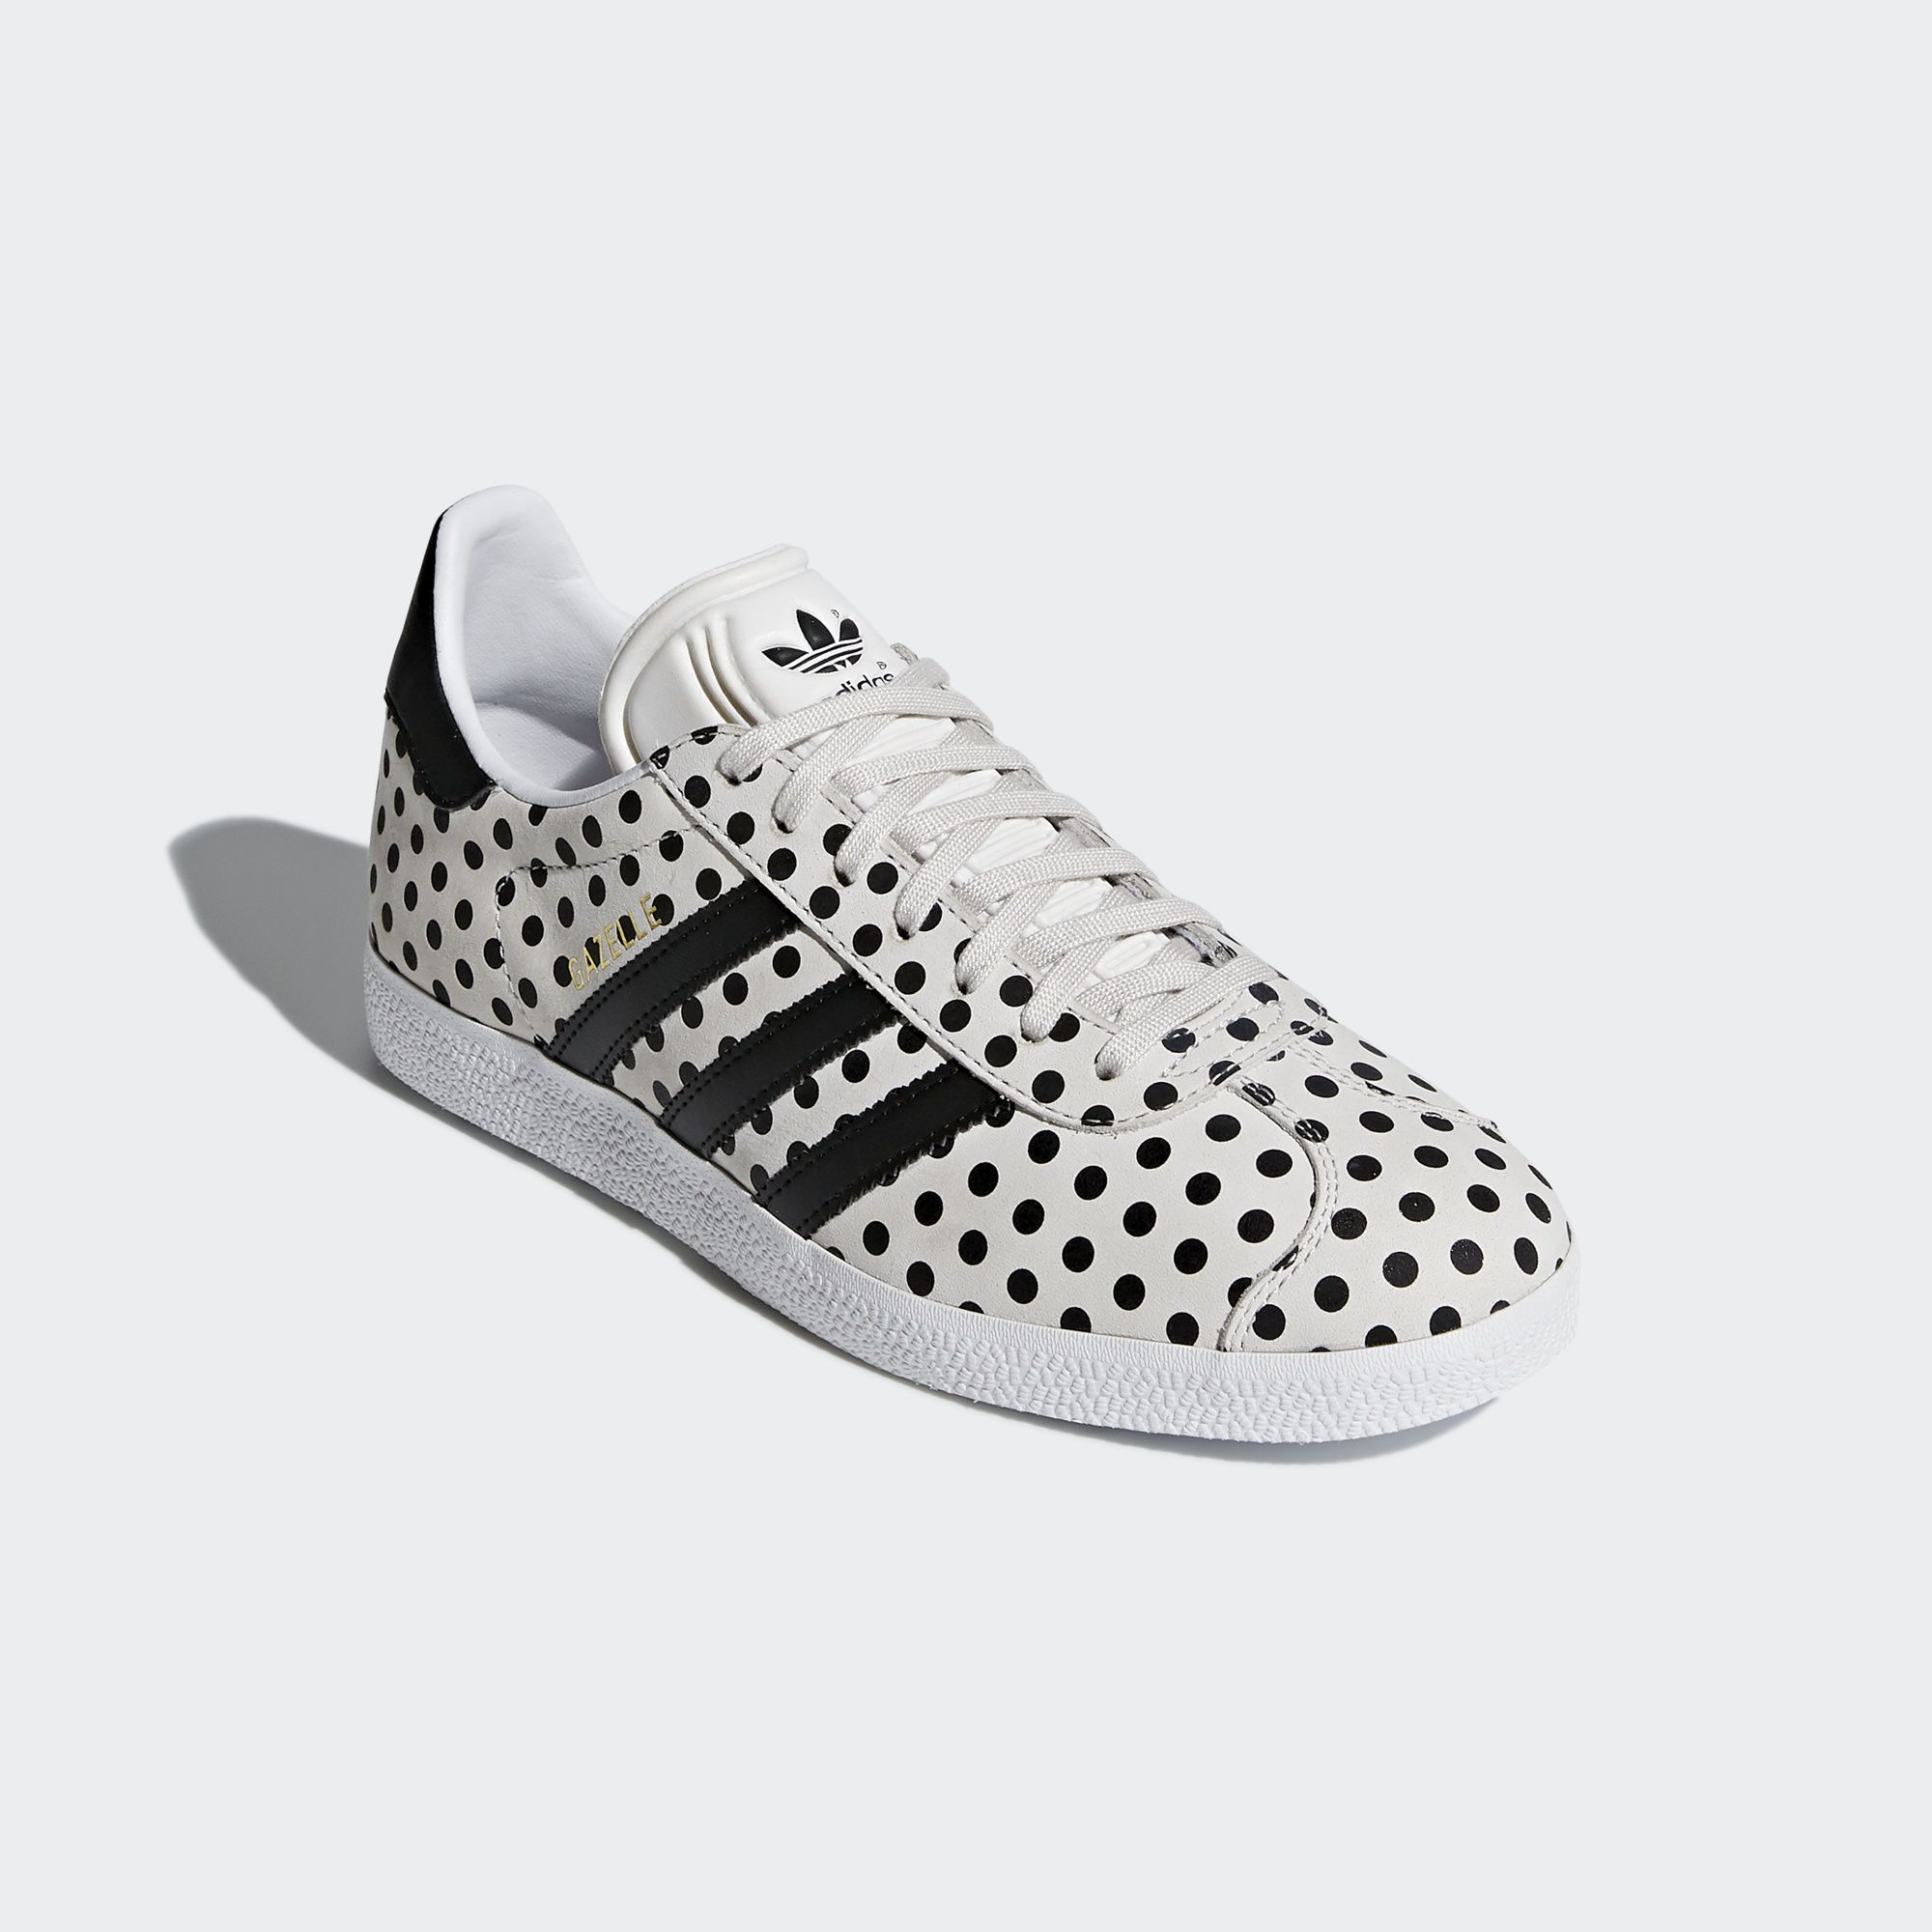 WhiteUs Gazelle Shoes Adidas Zapatos Adidas Gazelle WhiteUs Shoes GUzMqSpV